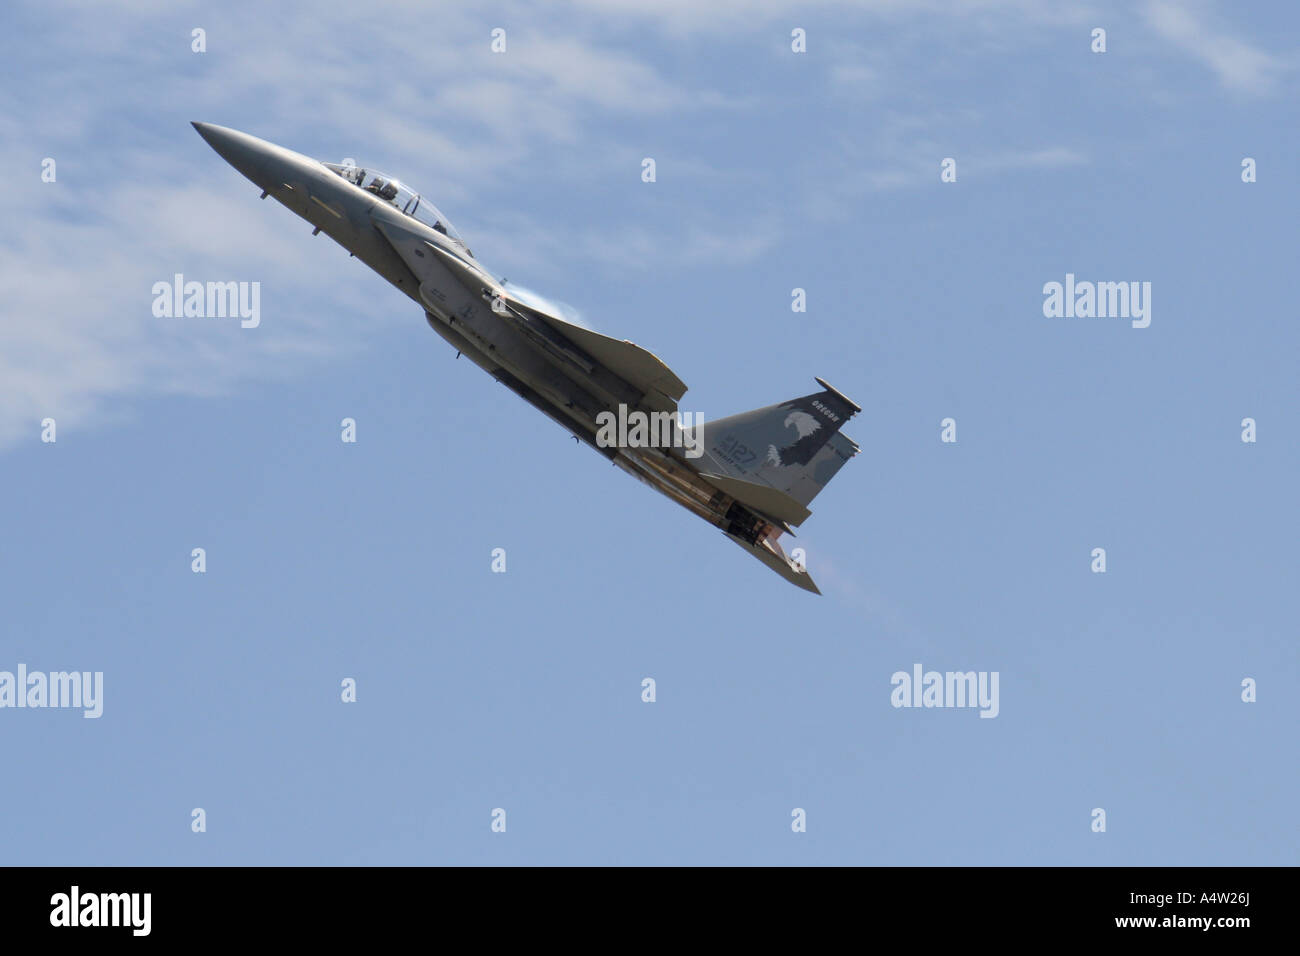 F16 Jet doing a fly by Stock Photo